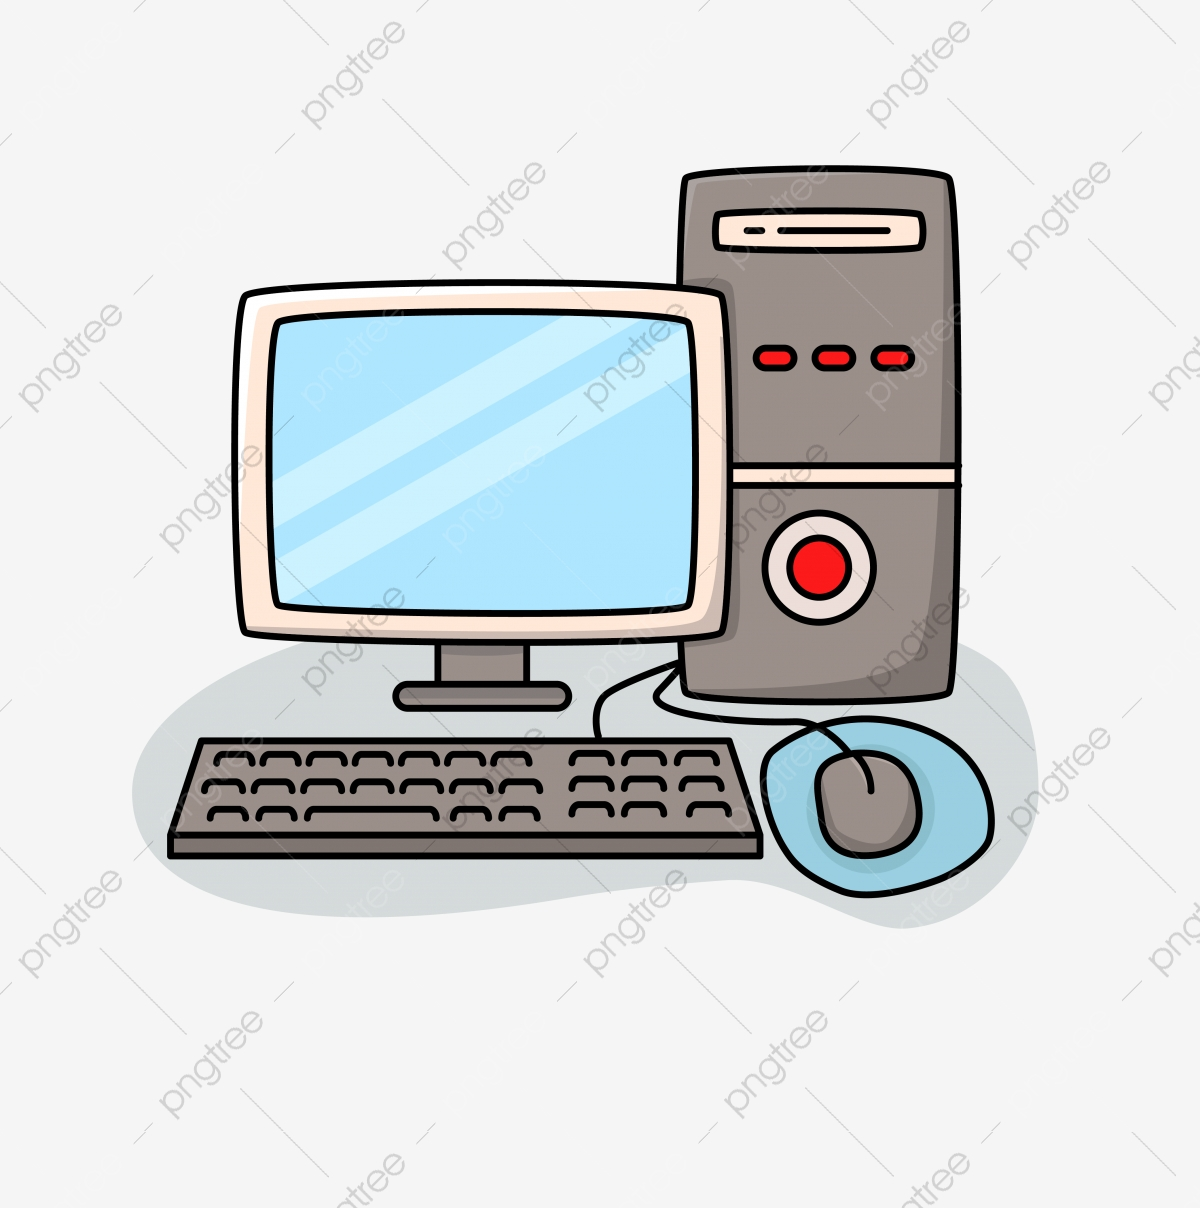 Computer Clipart Png Images Vector And Psd Files Free Download On Pngtree